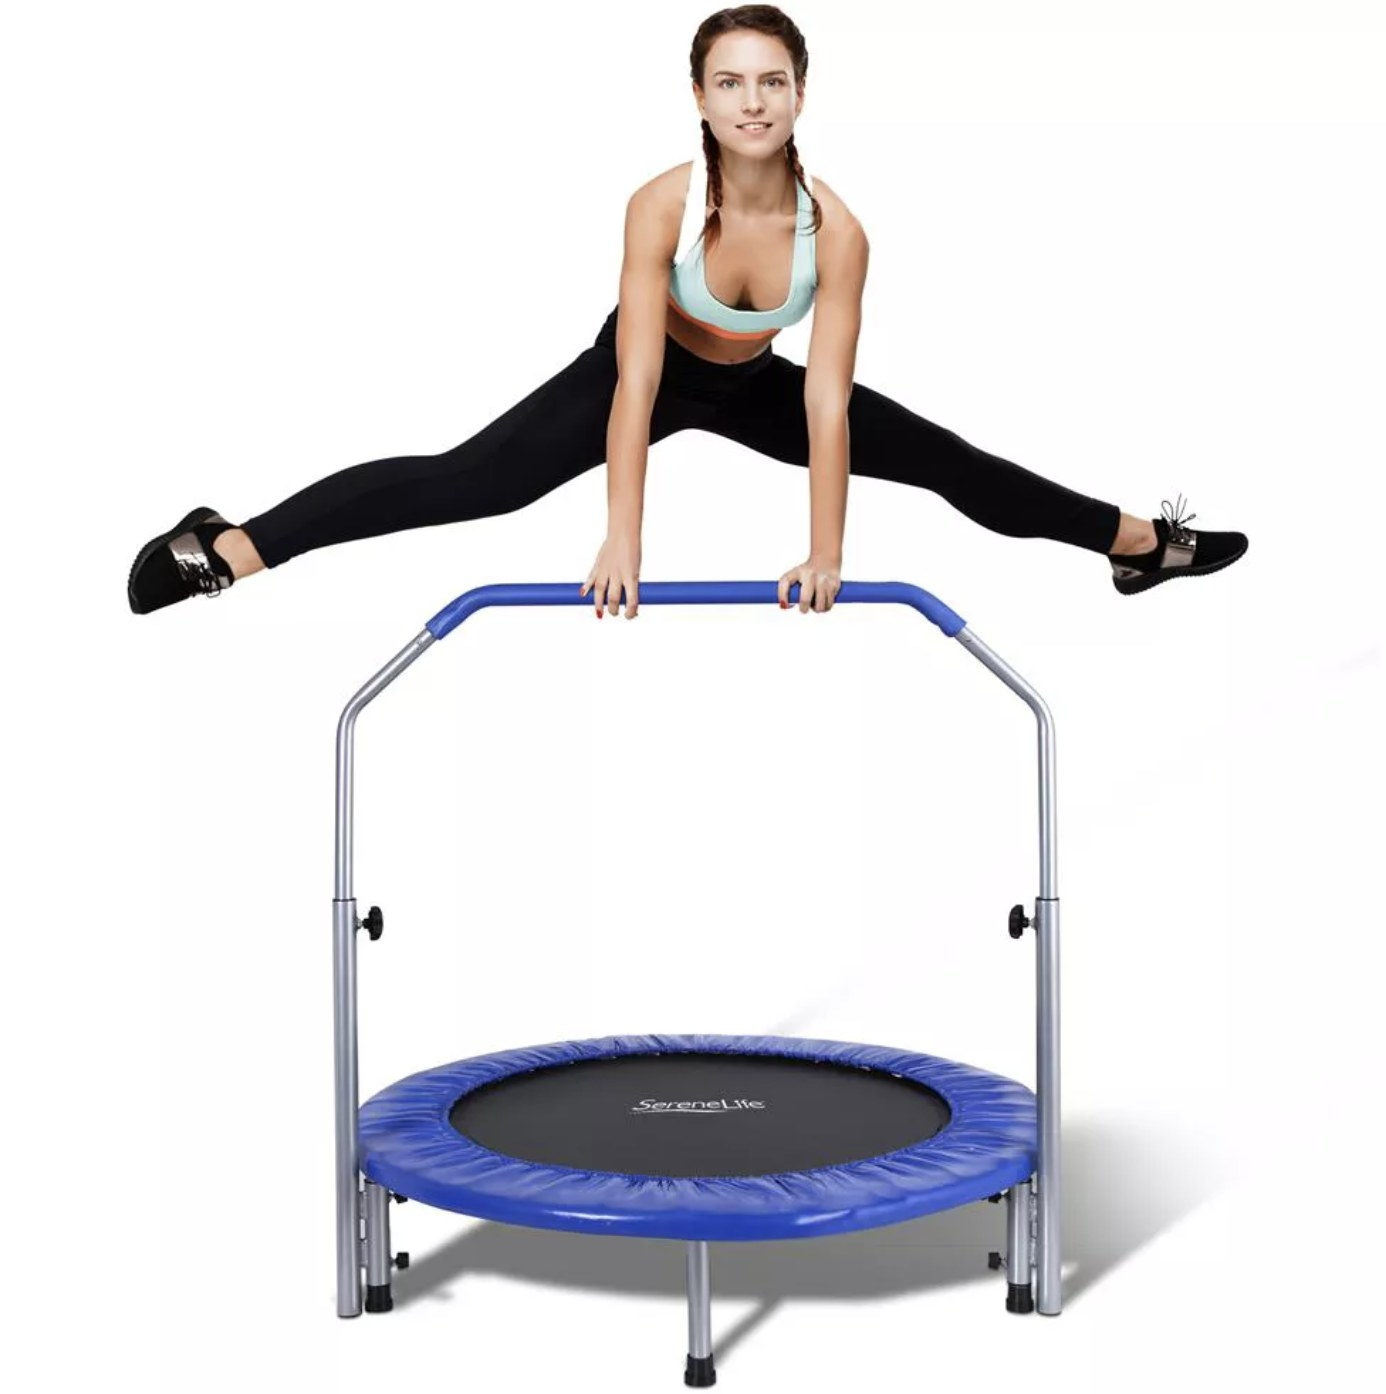 A person jumping on a mini trampoline